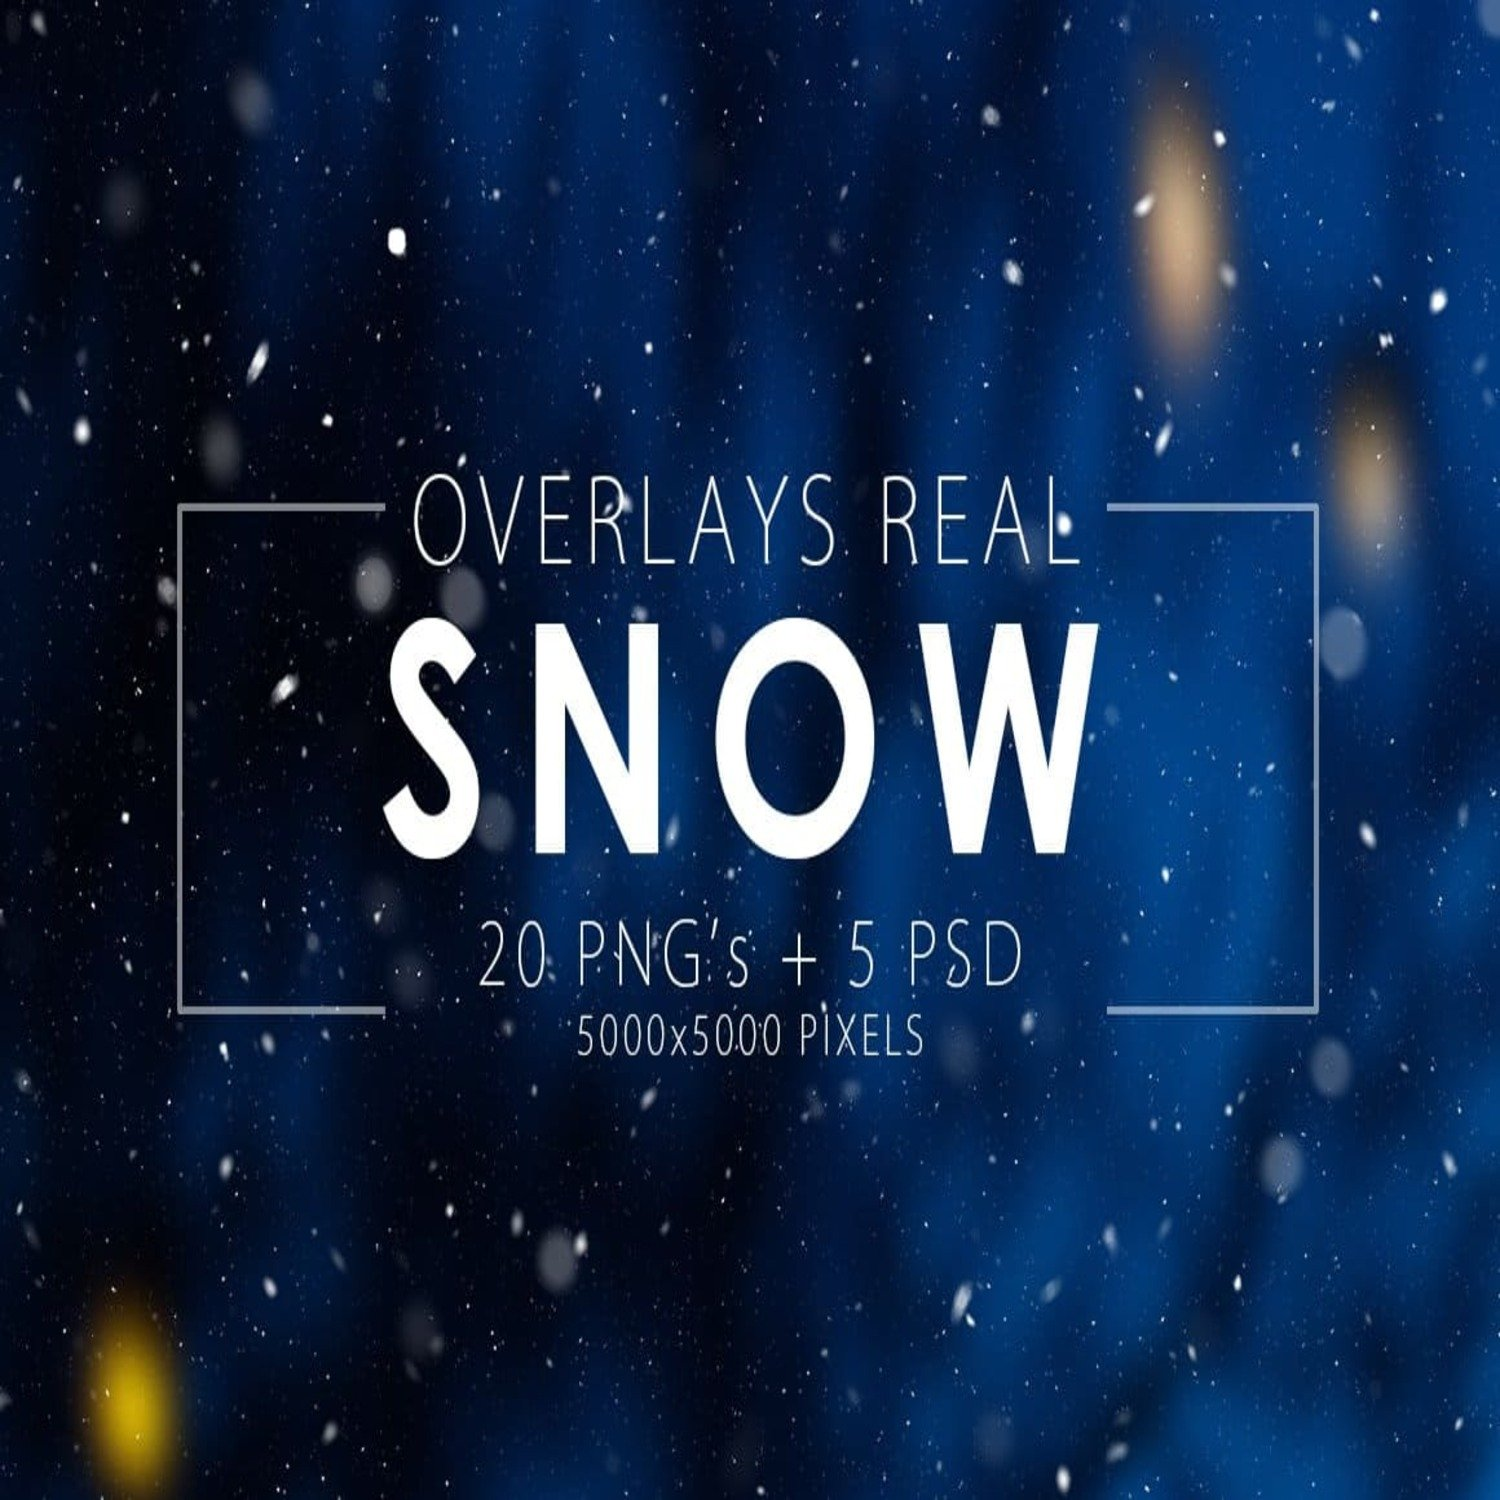 Real Snow Overlays main cover.